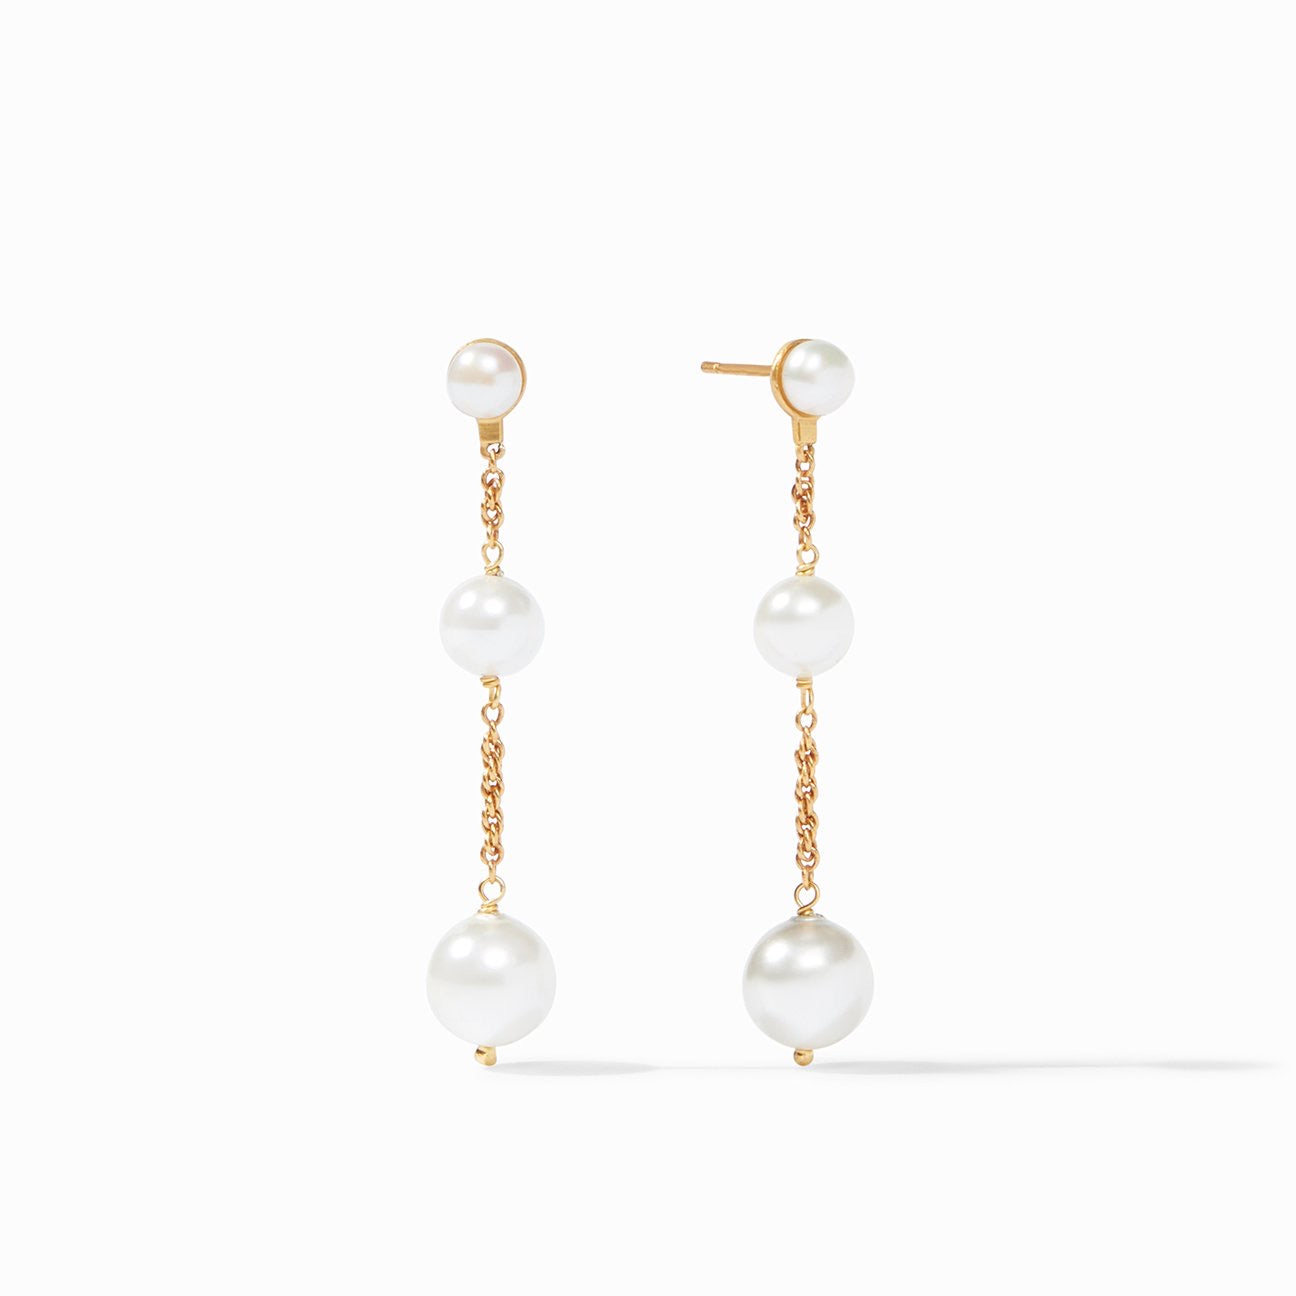 Julie Vos - Cascade Pearl Earrings